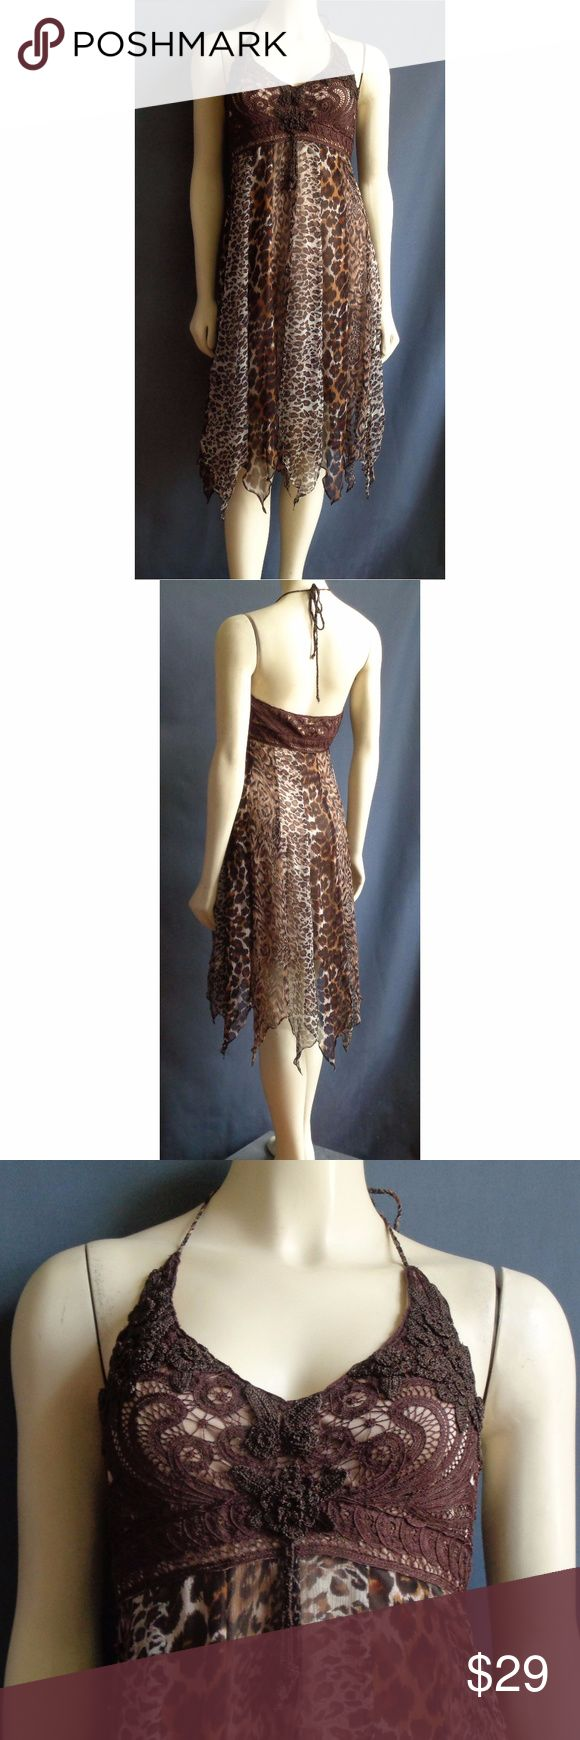 Sue Wong Leopard Spot Crochet Asymmetric Dress 10 Sue Wong leopard spot silk halter dress in a size 10. Side zipper closure. Handkerchief asymmetrical hem. Braided silk ties is tied around neck. Crochet lace at bust. Fully lined. Soft padding at bust.  80% silk & 20% rayon. Spot clean only.  Measurements Taken Laid flat:  18 inches across underarm to underarm   15 1/2 inches across waist  20 inches across hips  42 inches long from top of shoulder to hem at longest point Sue Wong Dresses…